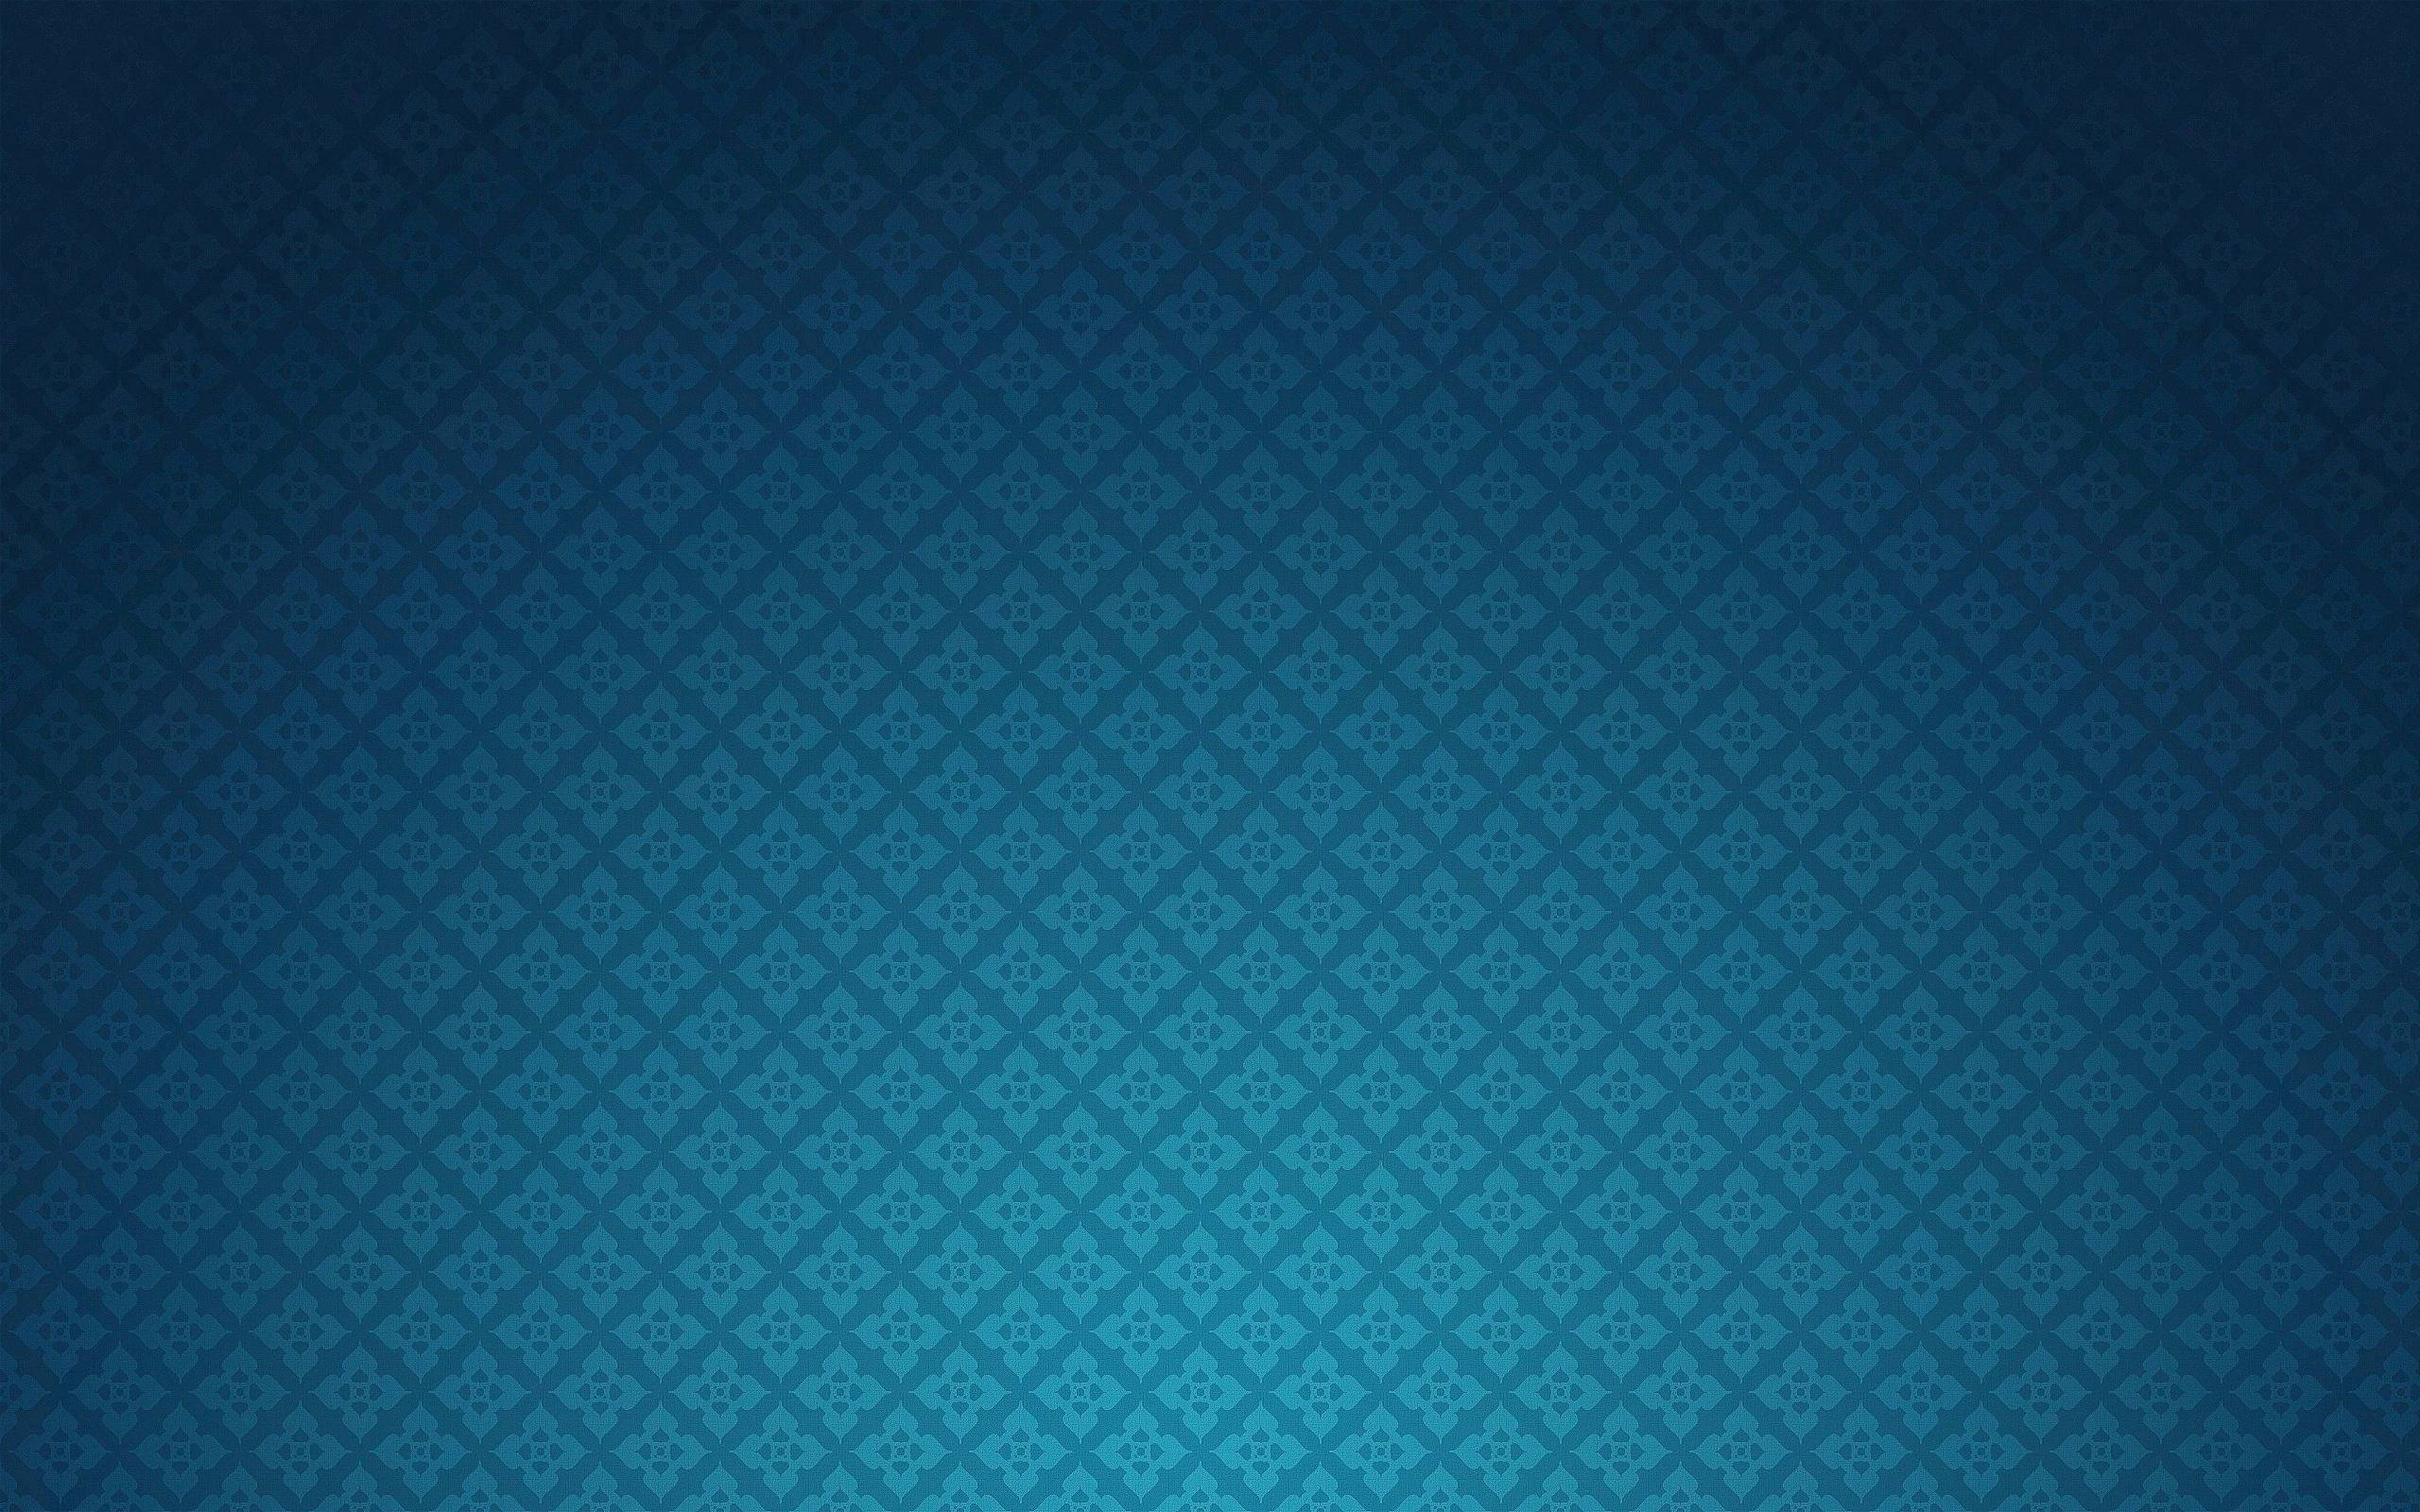 Blue wallpaper texture